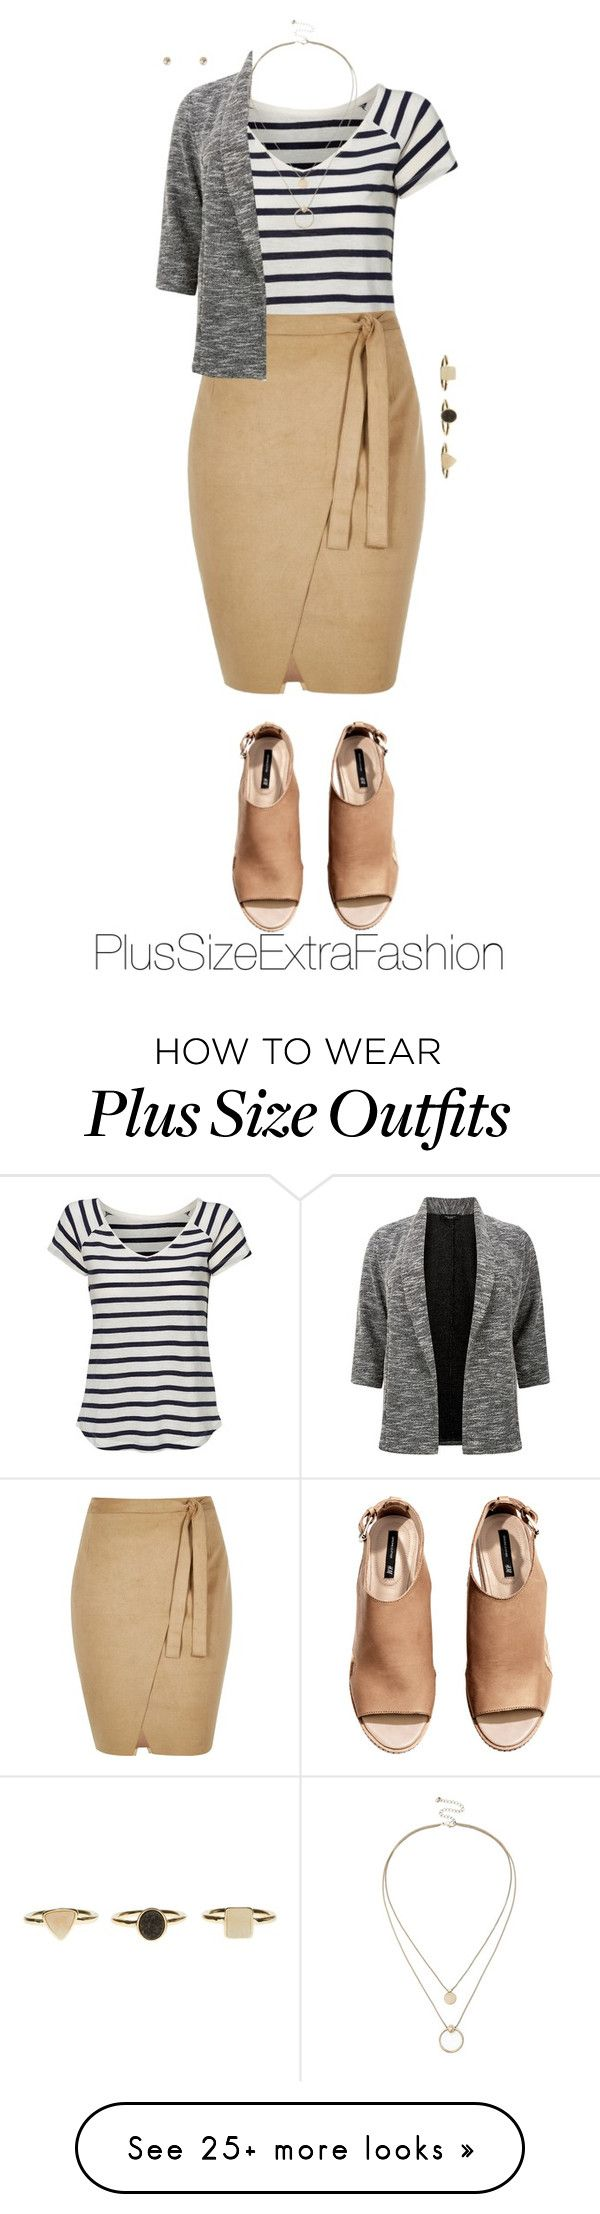 Plus Size Workwear ft. Wrap Skirt and Stripes! Keep up with what's trending this season at hookedupshapewear.com!